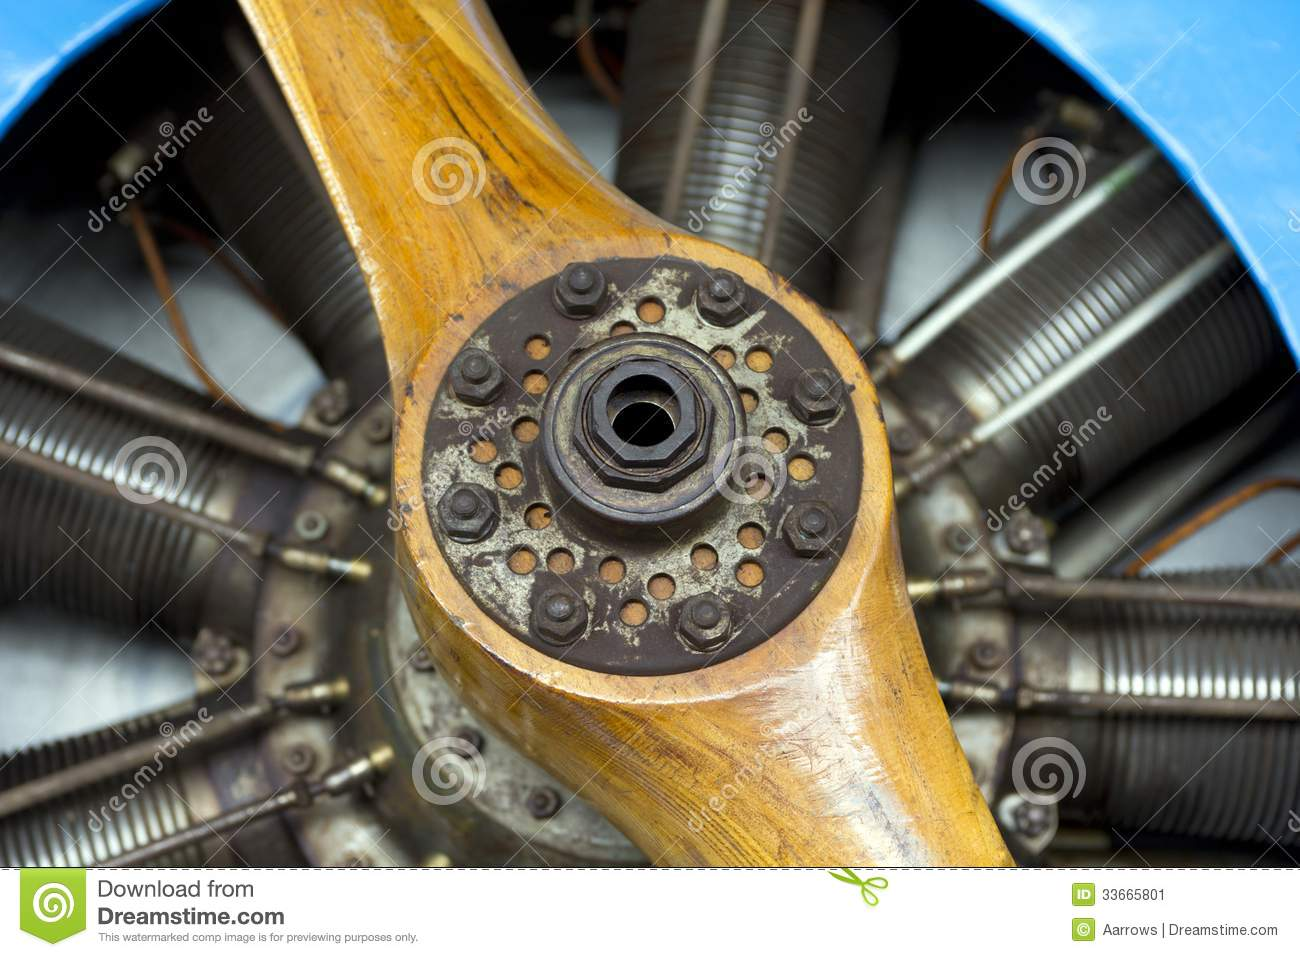 Old Aircraft Propeller Engine Close-Up Photo